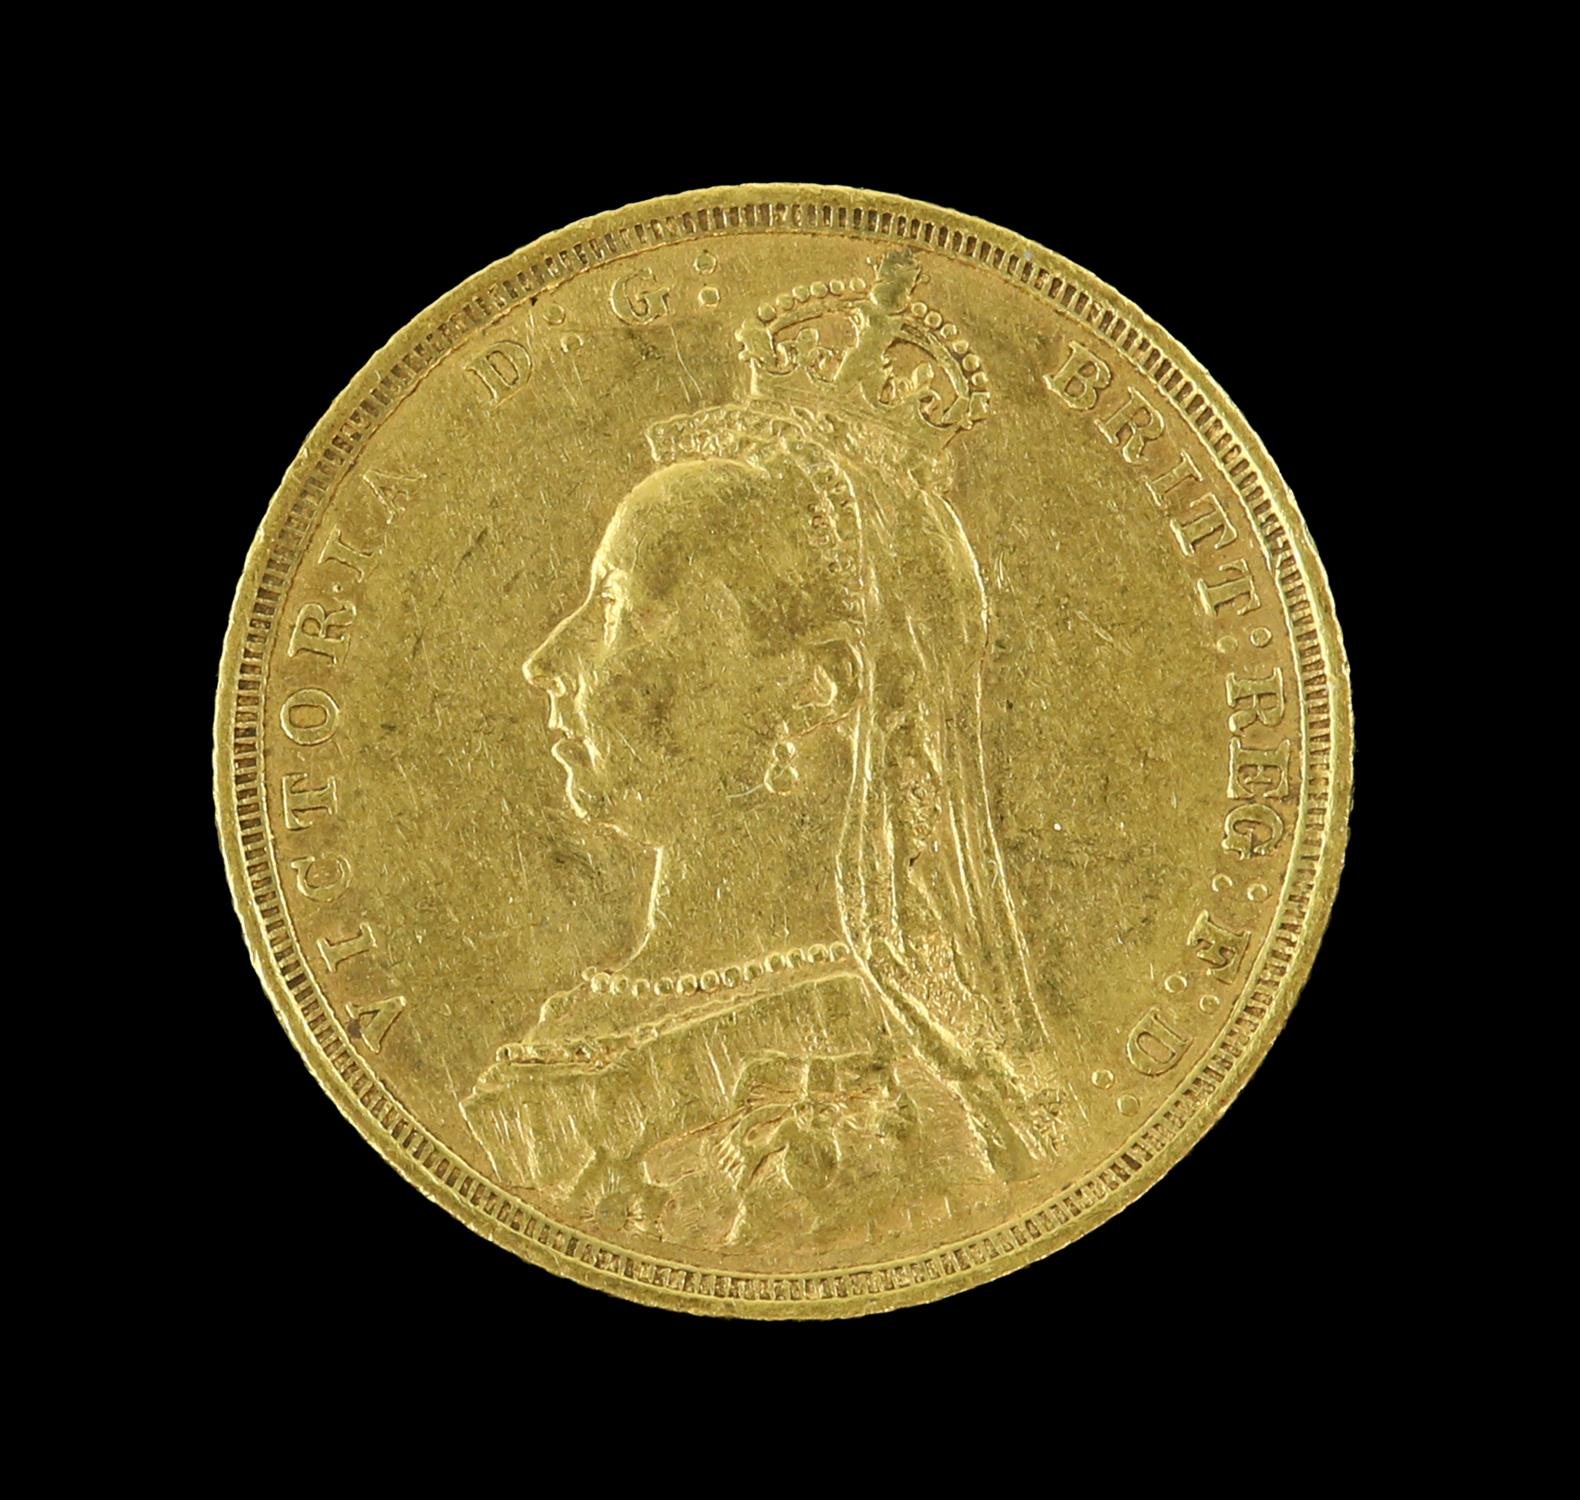 Victorian gold sovereign 1890, Sydney mint - Image 2 of 2